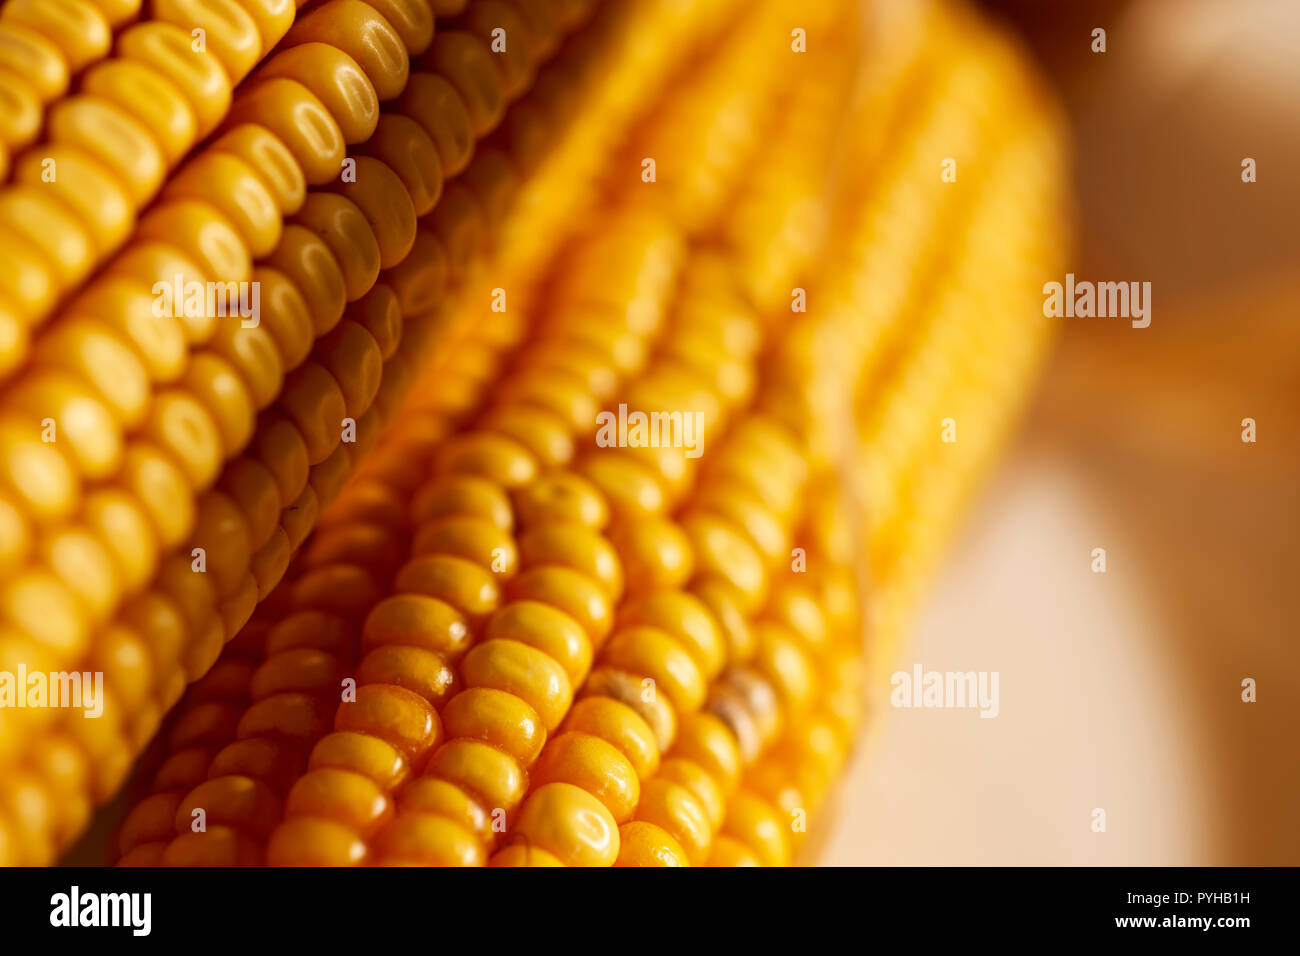 Ears of dried dent corn, sometimes called feed corn. - Stock Image